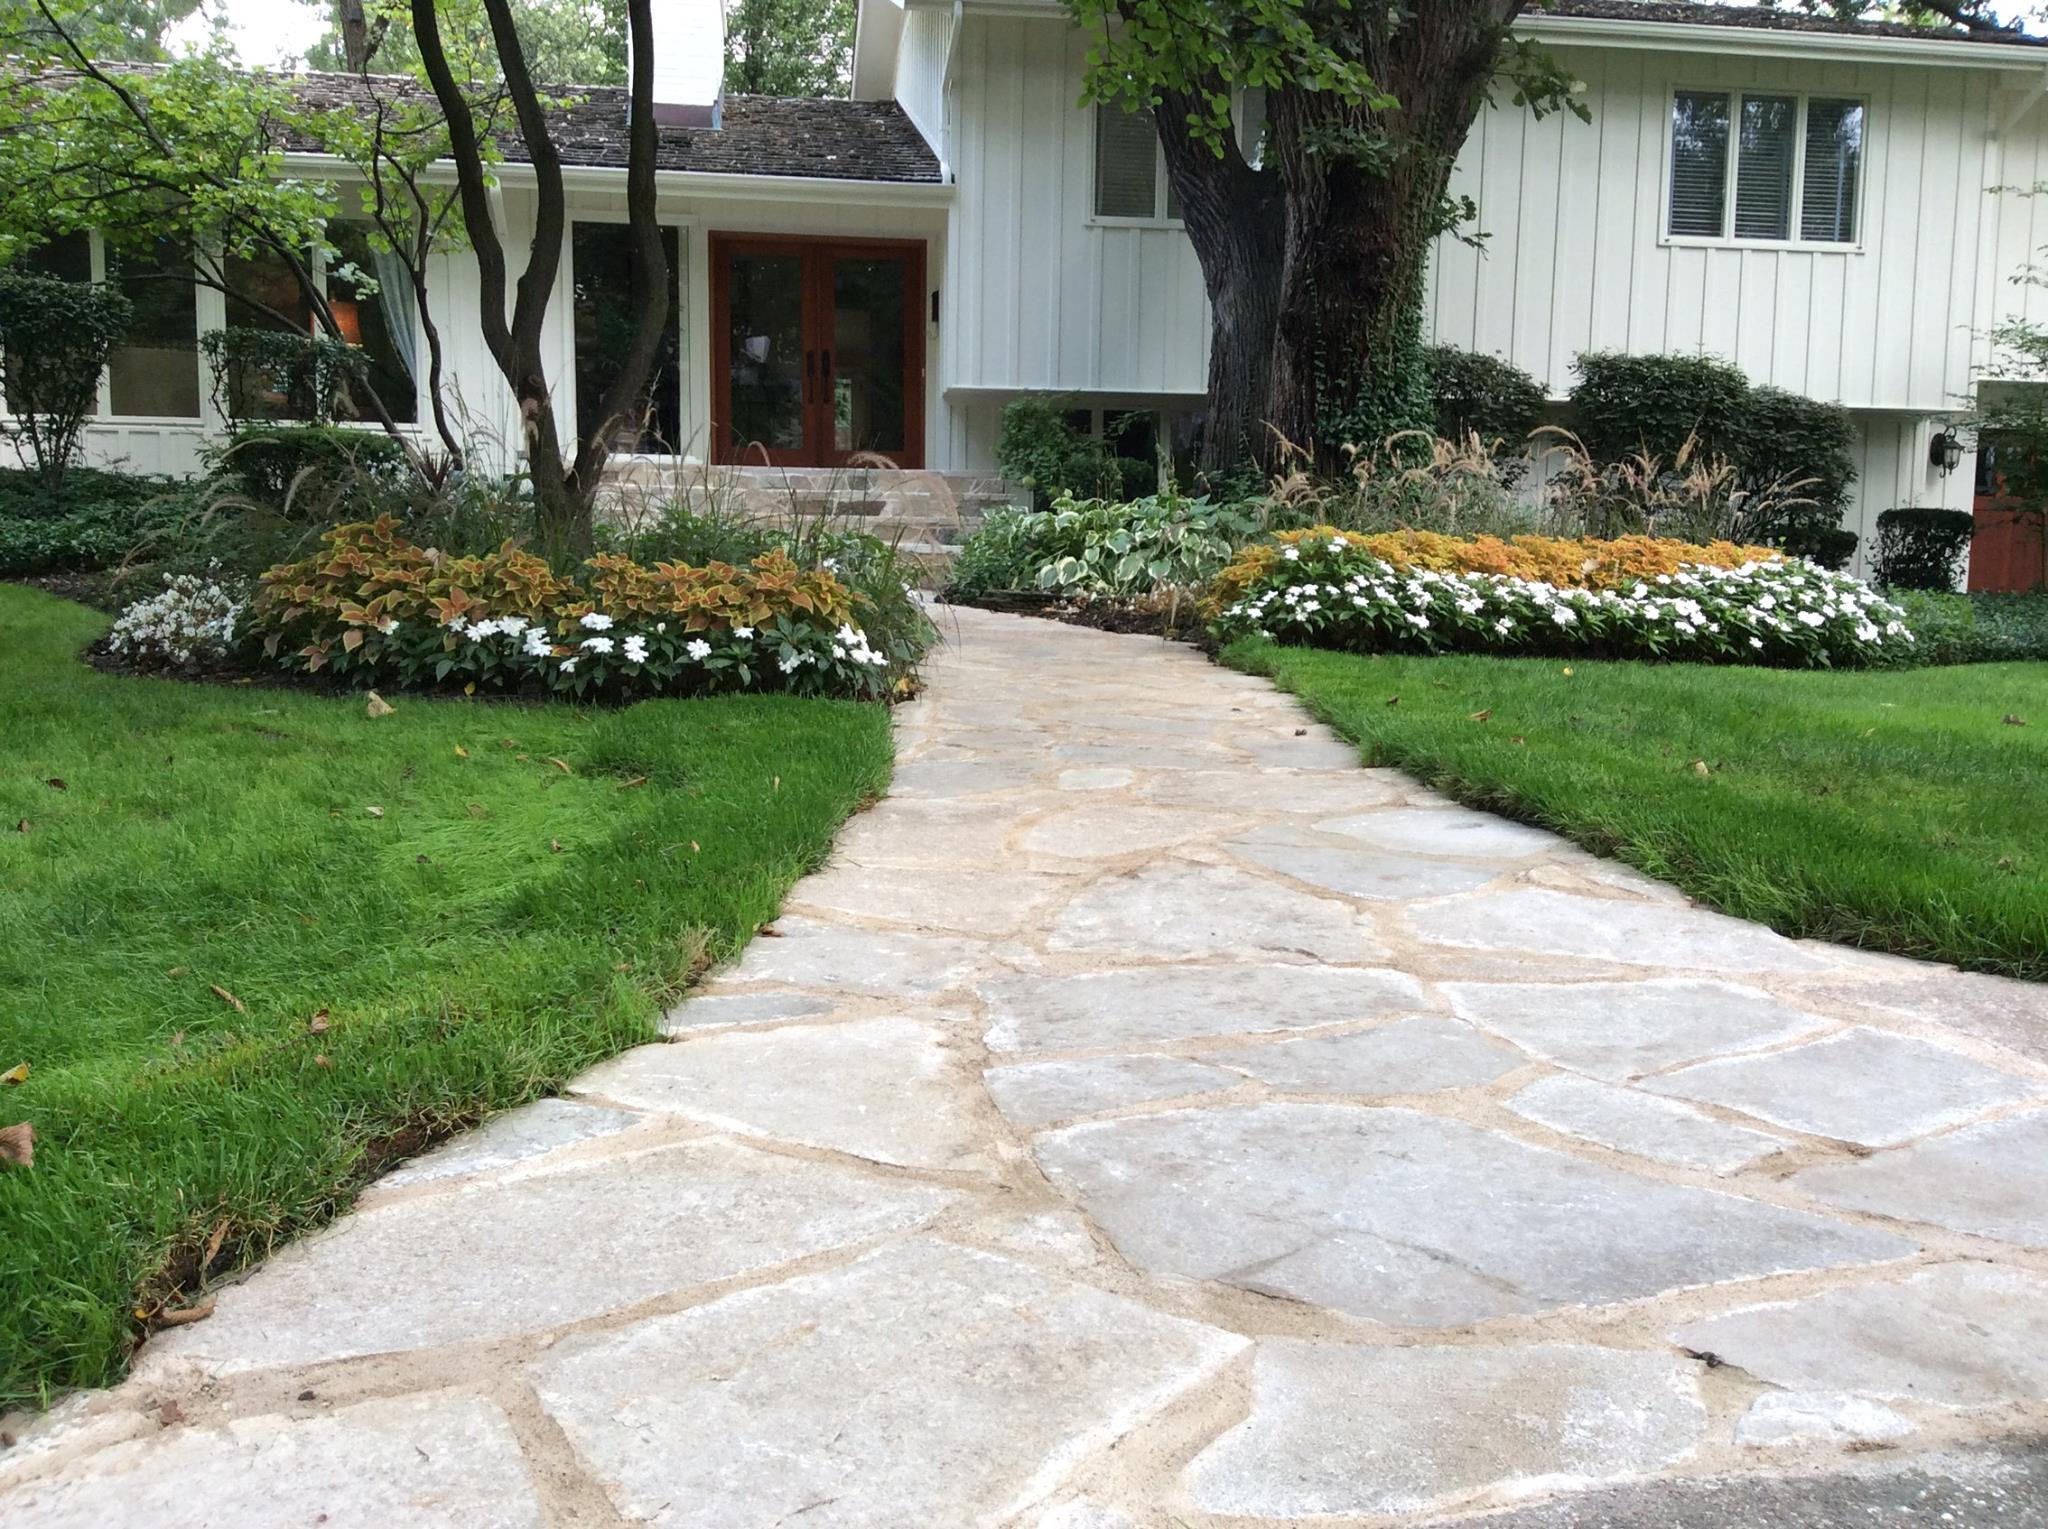 Brick paving, sod installation, brick driveway and other landscaping services on display in Oswego, IL